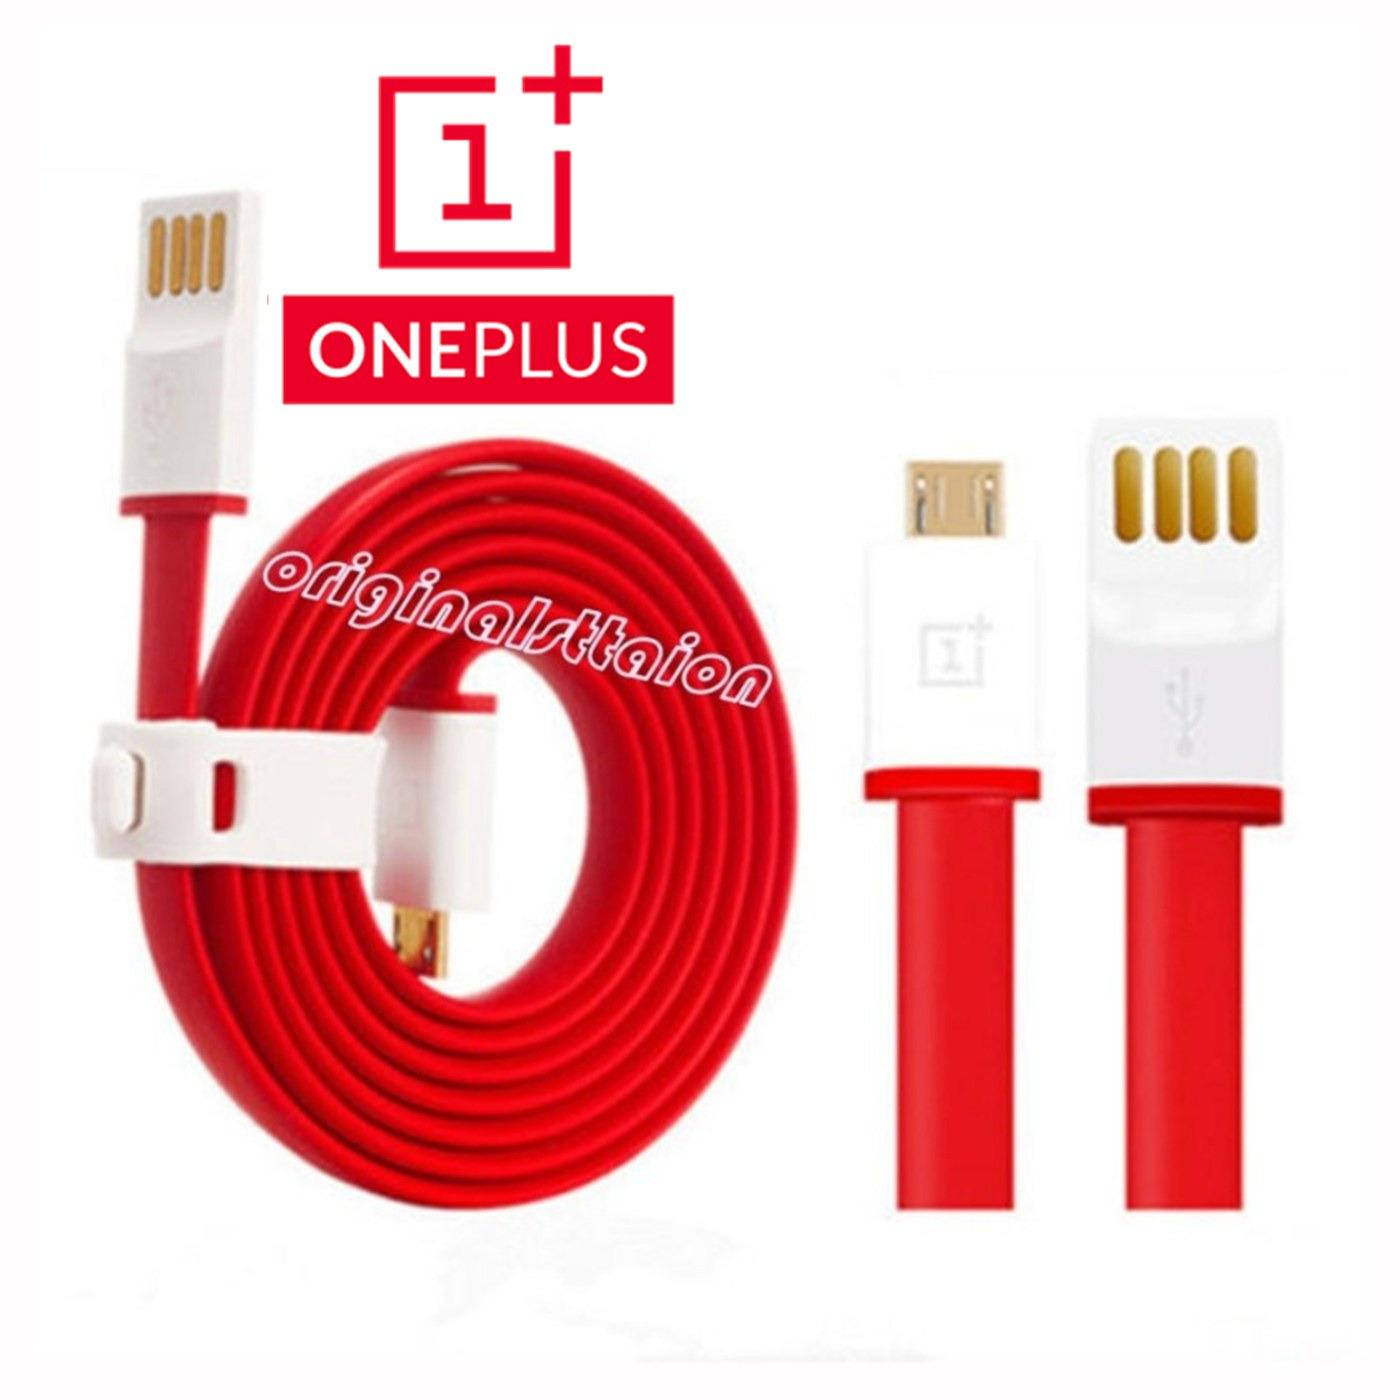 Promo One Plus Kabel Data Micro Usb Sinkron Data Charger Universal Support Smartphones Di Dki Jakarta